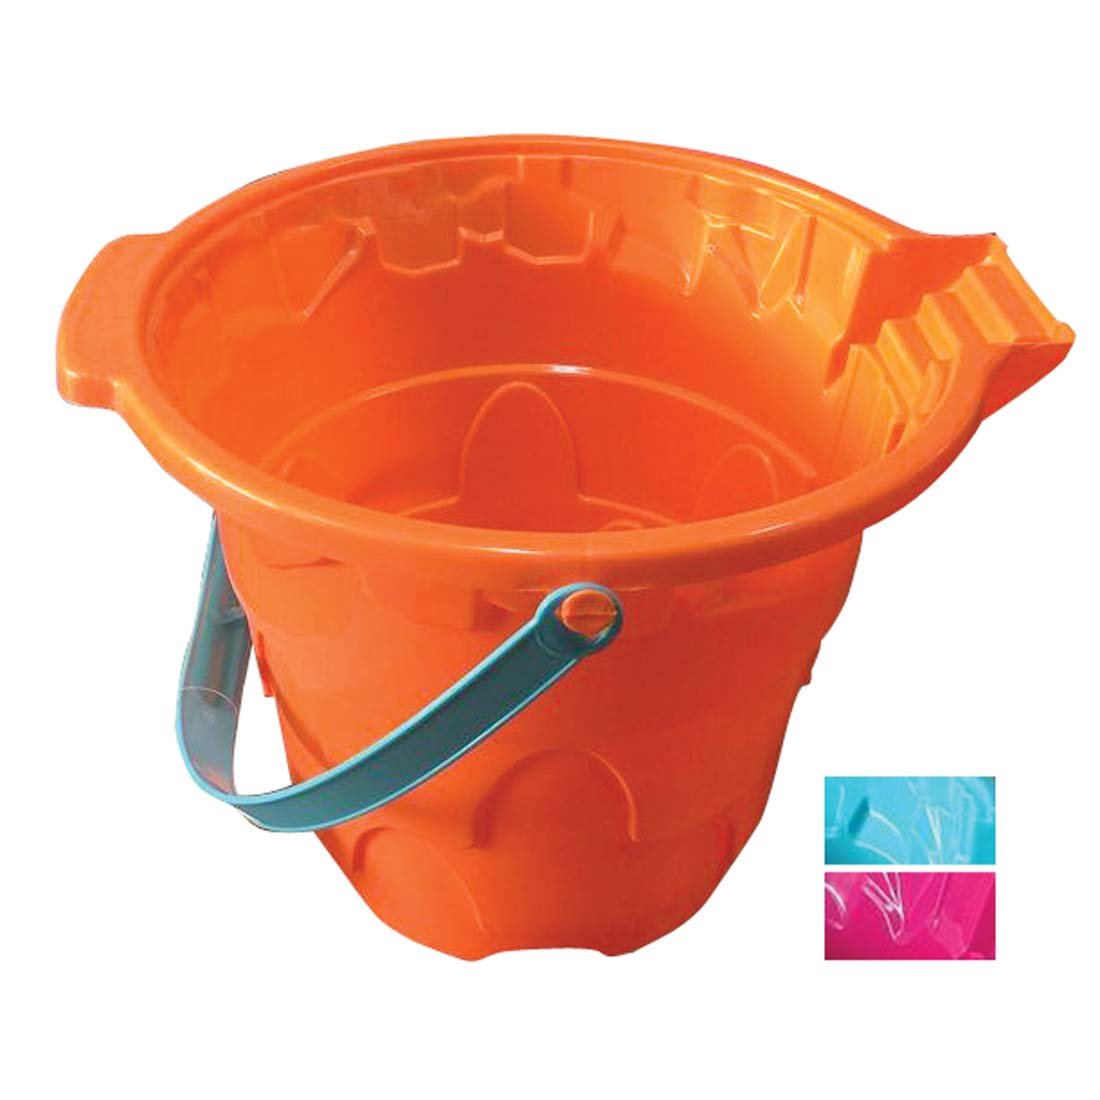 View BEACH BUCKET 11 X 9 INCHES ASSORTED COLORS